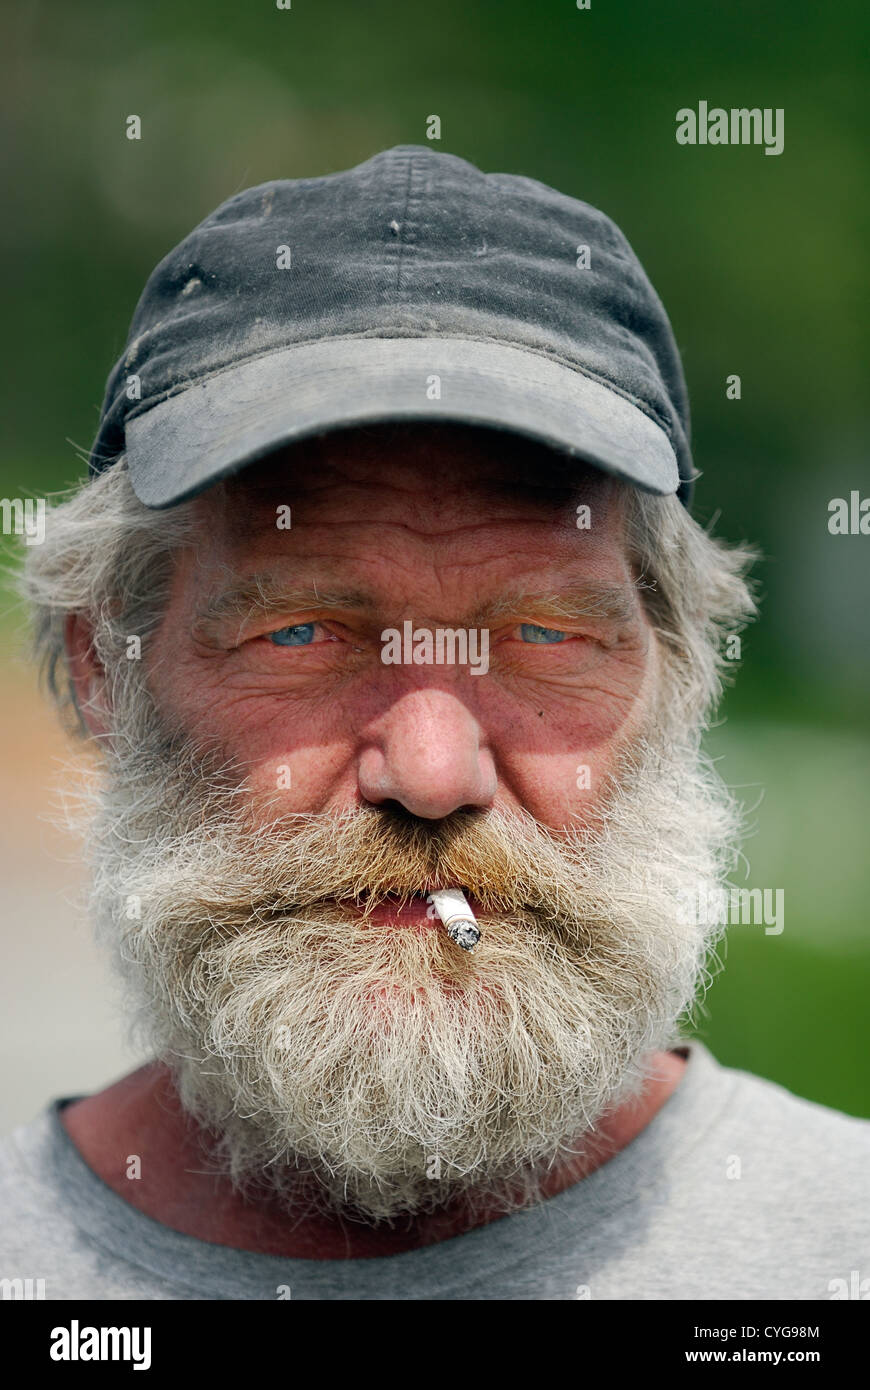 61429715ce8 Portrait of an old man with a grey beard wearing a cap smoking. - Stock